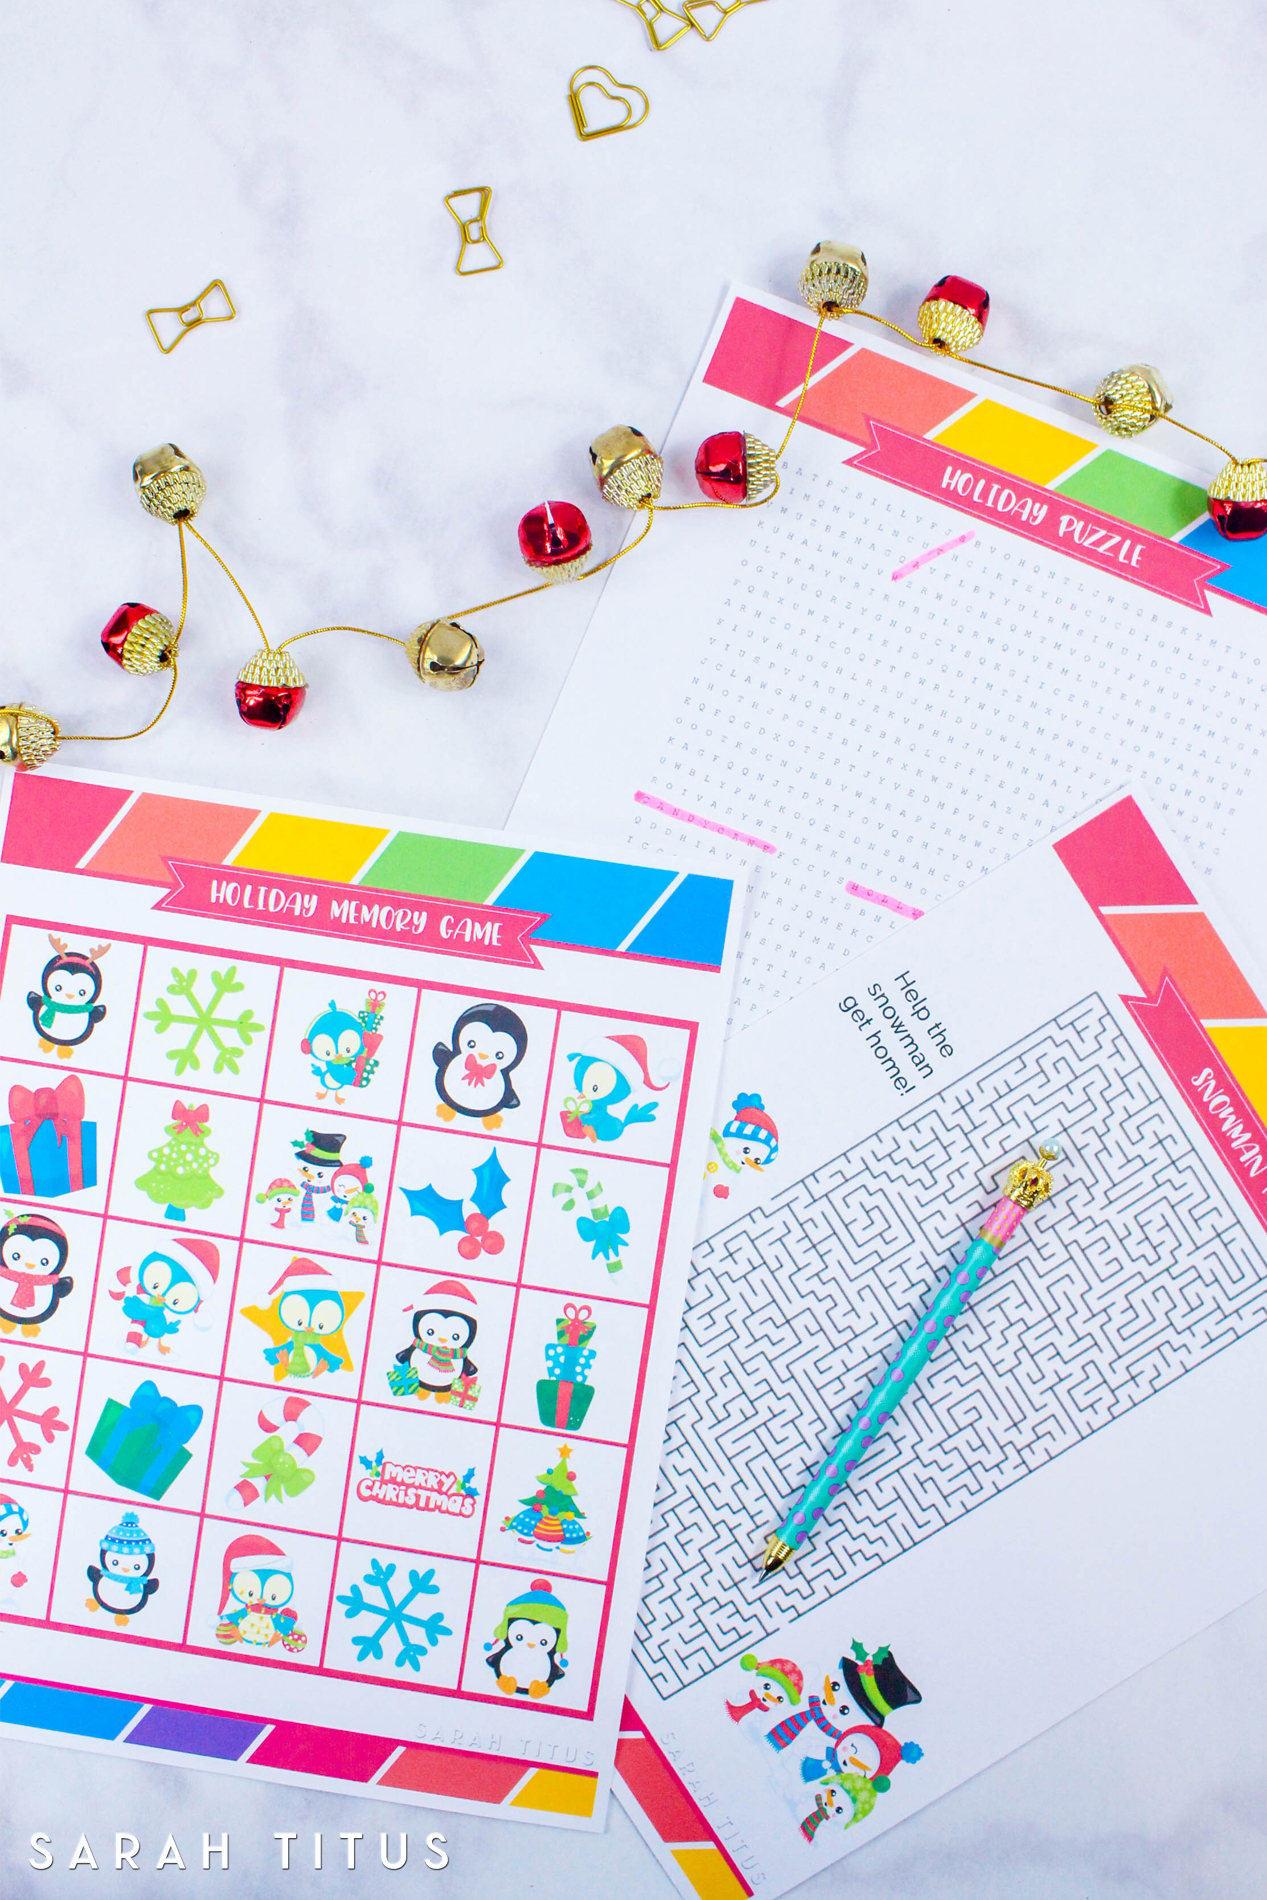 Free Printable Holiday Games That You Will Love - Sarah Titus - Free Holiday Games Printable